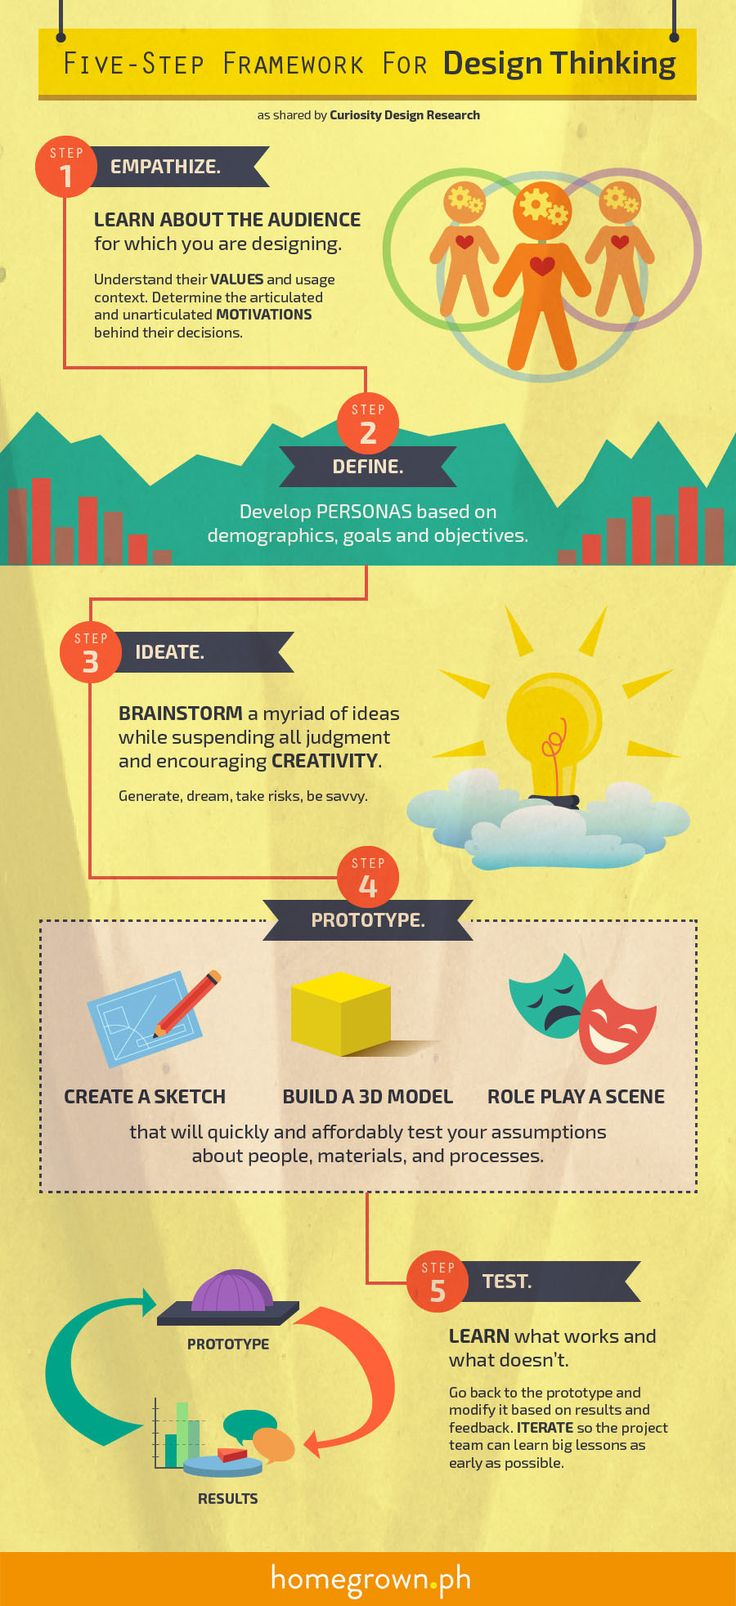 Five Step Framework for Design Thinking Infographic - http://elearninginfographics.com/five-step-framework-design-thinking-infographic/